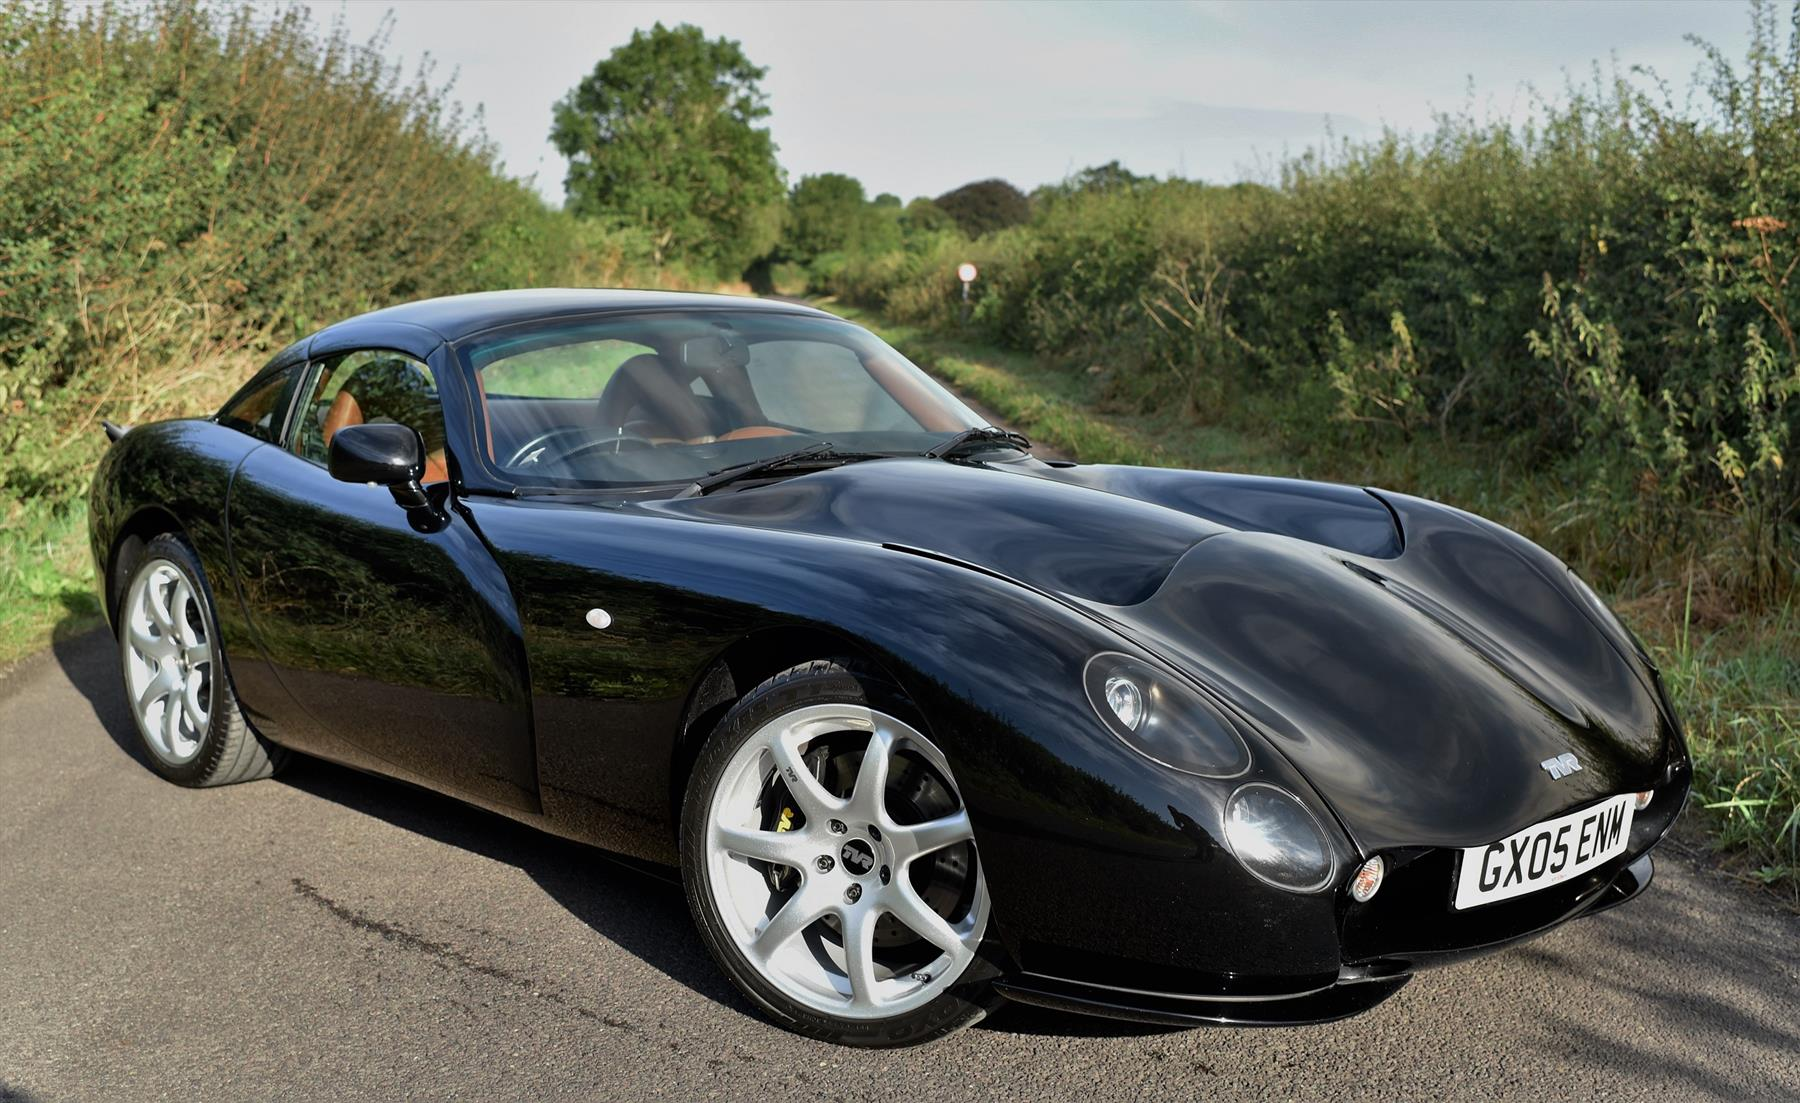 2005 TVR Tuscan #23